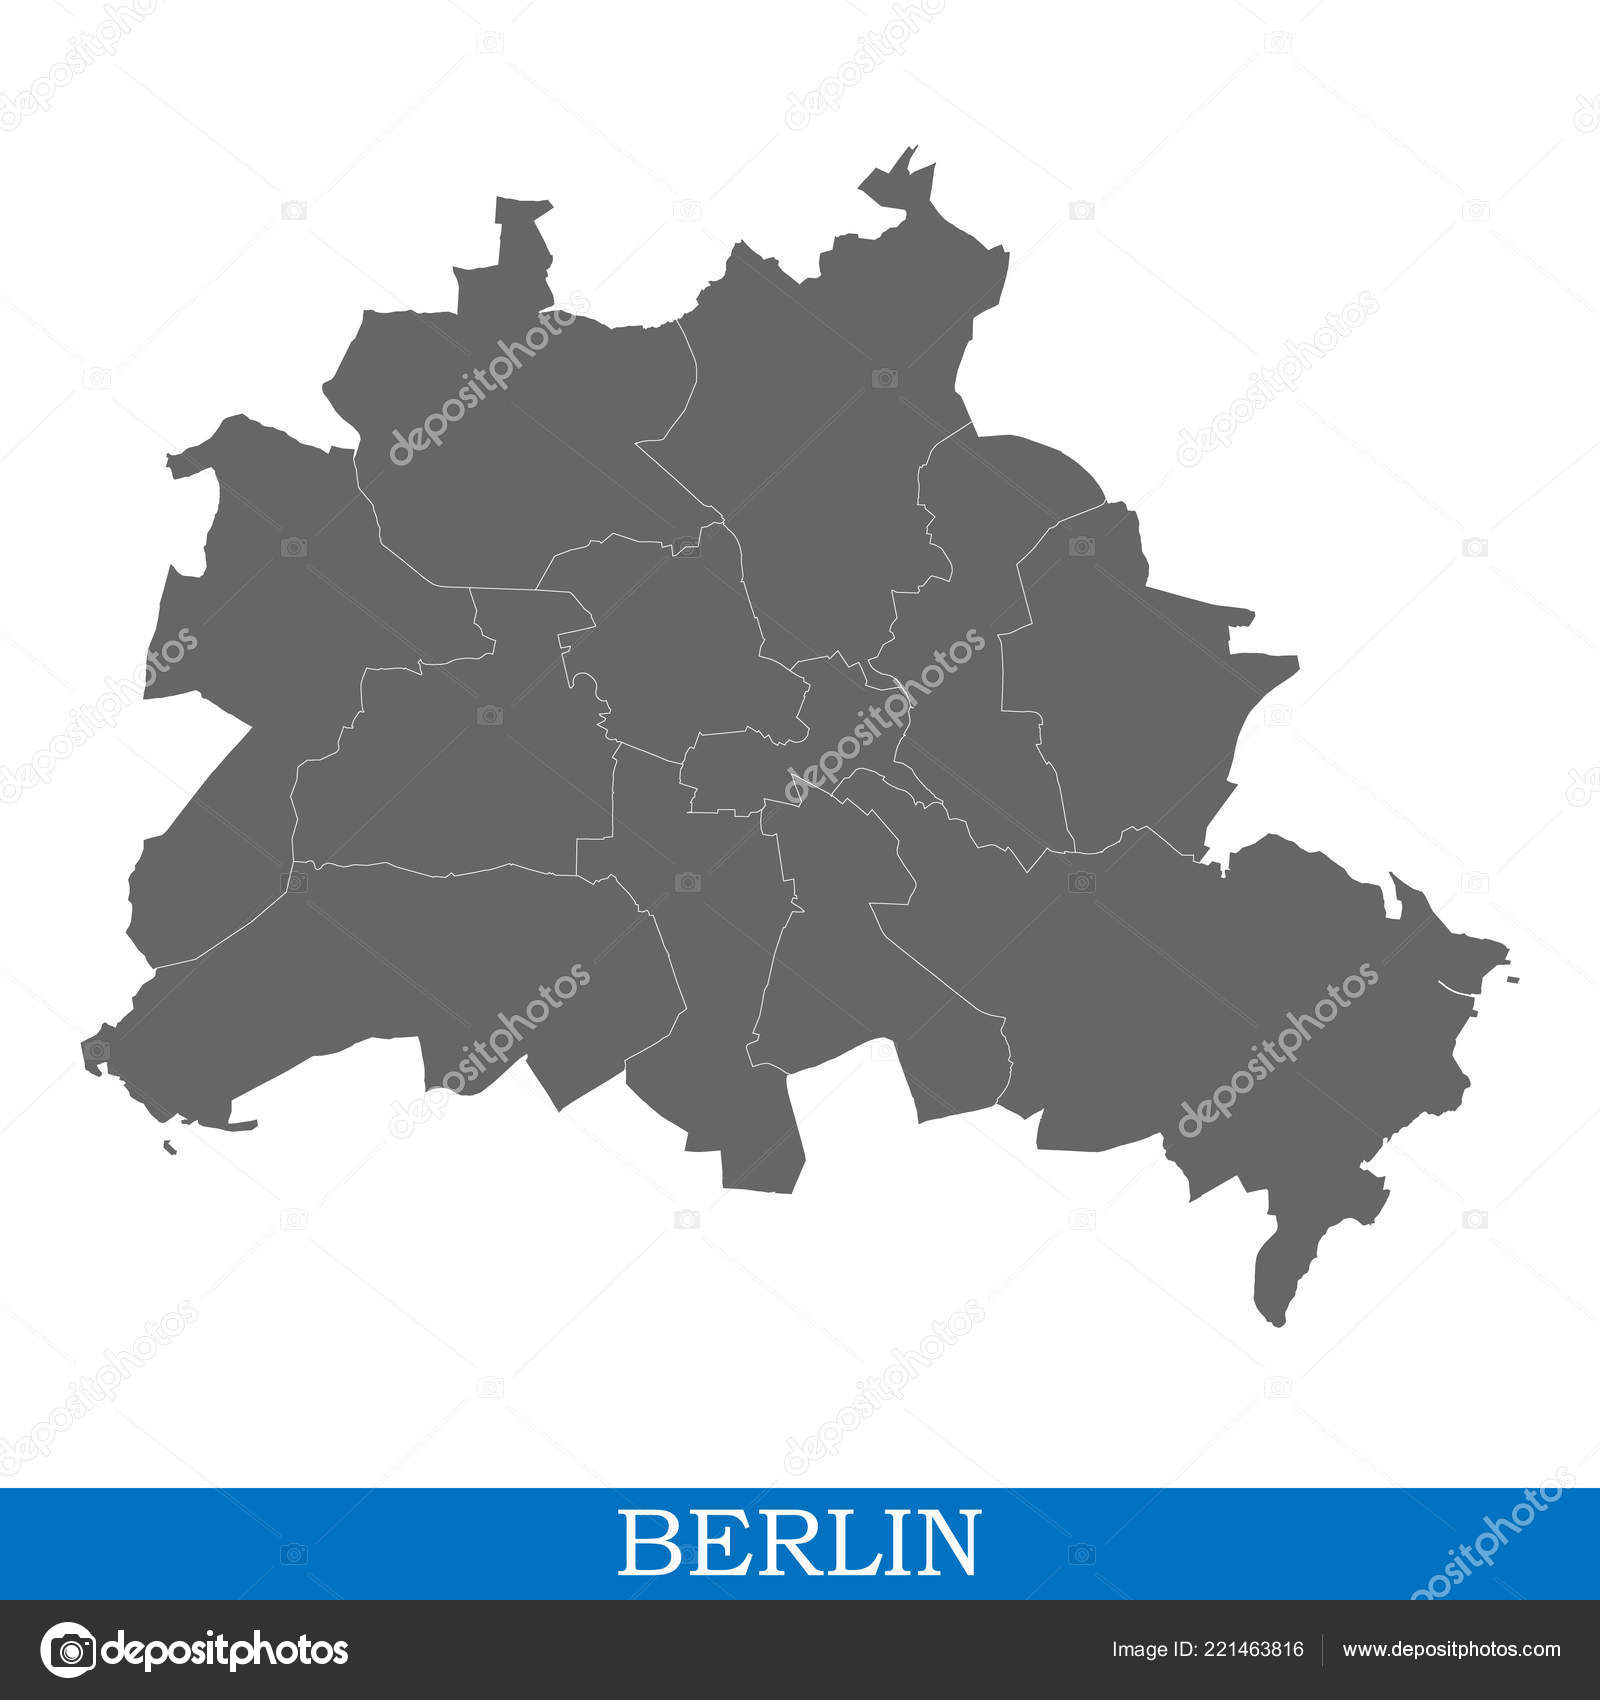 Germany Map Berlin.High Quality Map Berlin City Germany Borders Districts Stock